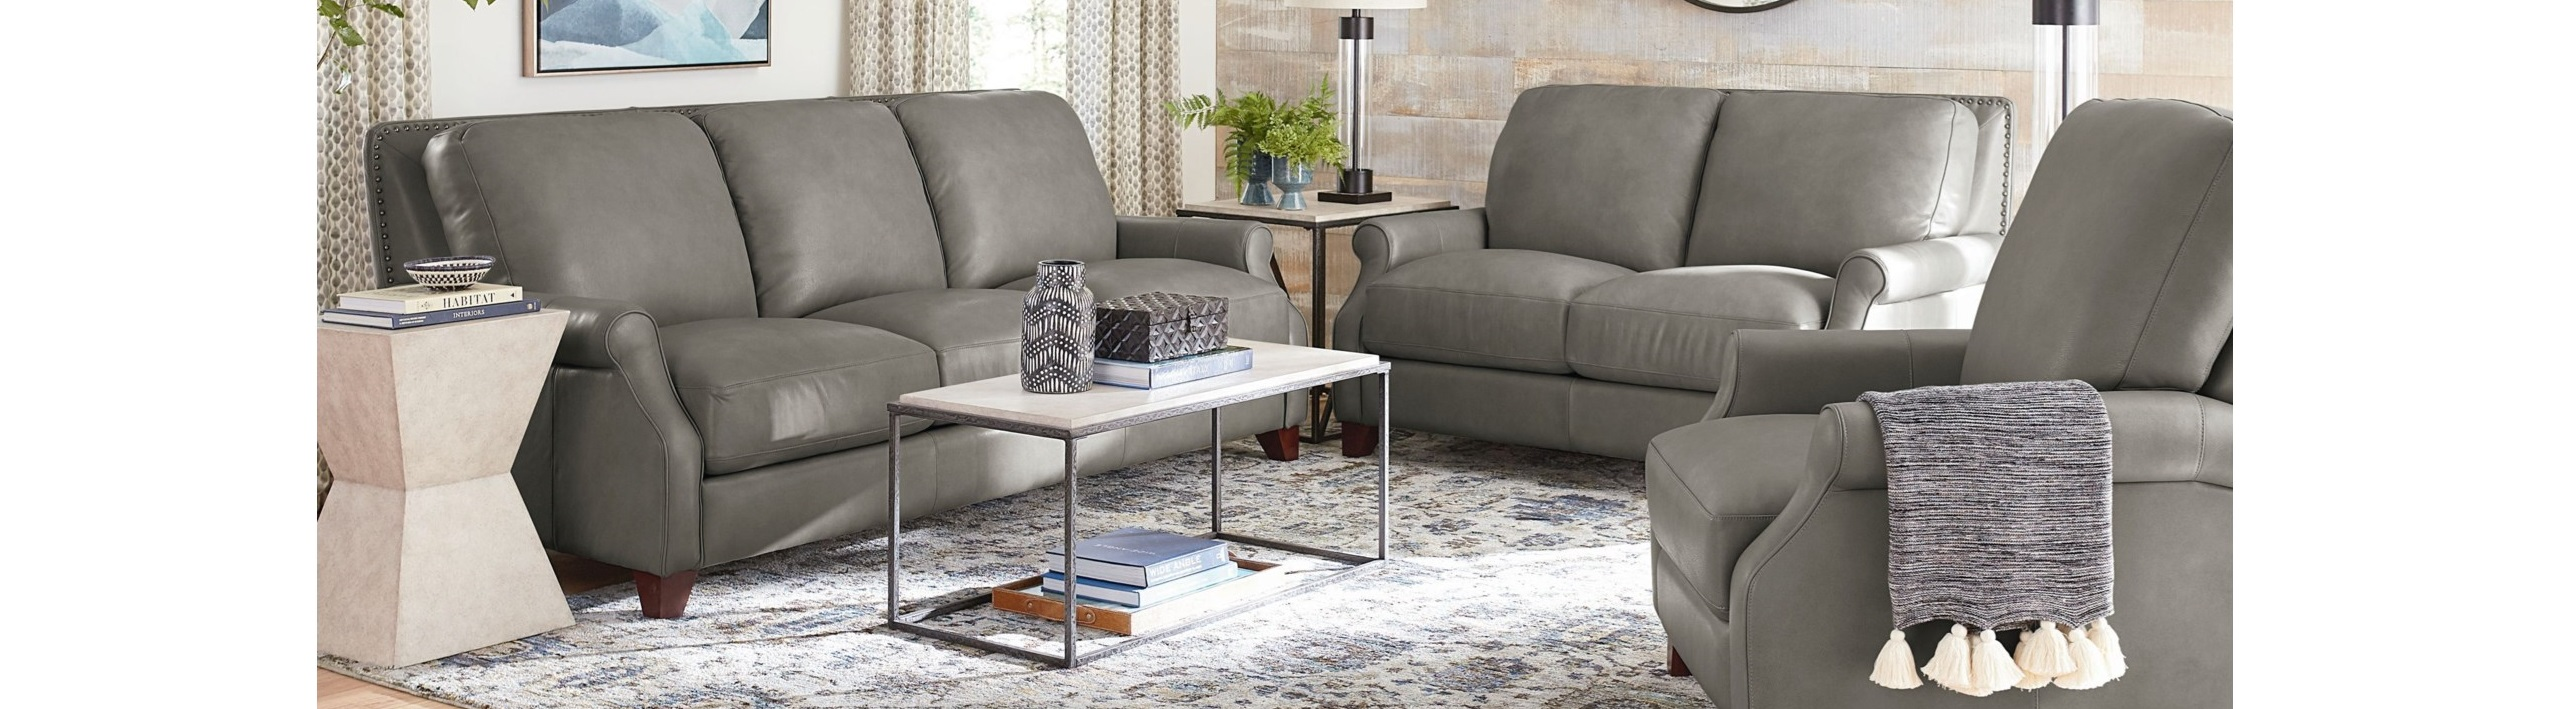 Crowley Furniture & Mattress reviews | Accessories at 1600 NW Chipman Rd - Lee's Summit MO